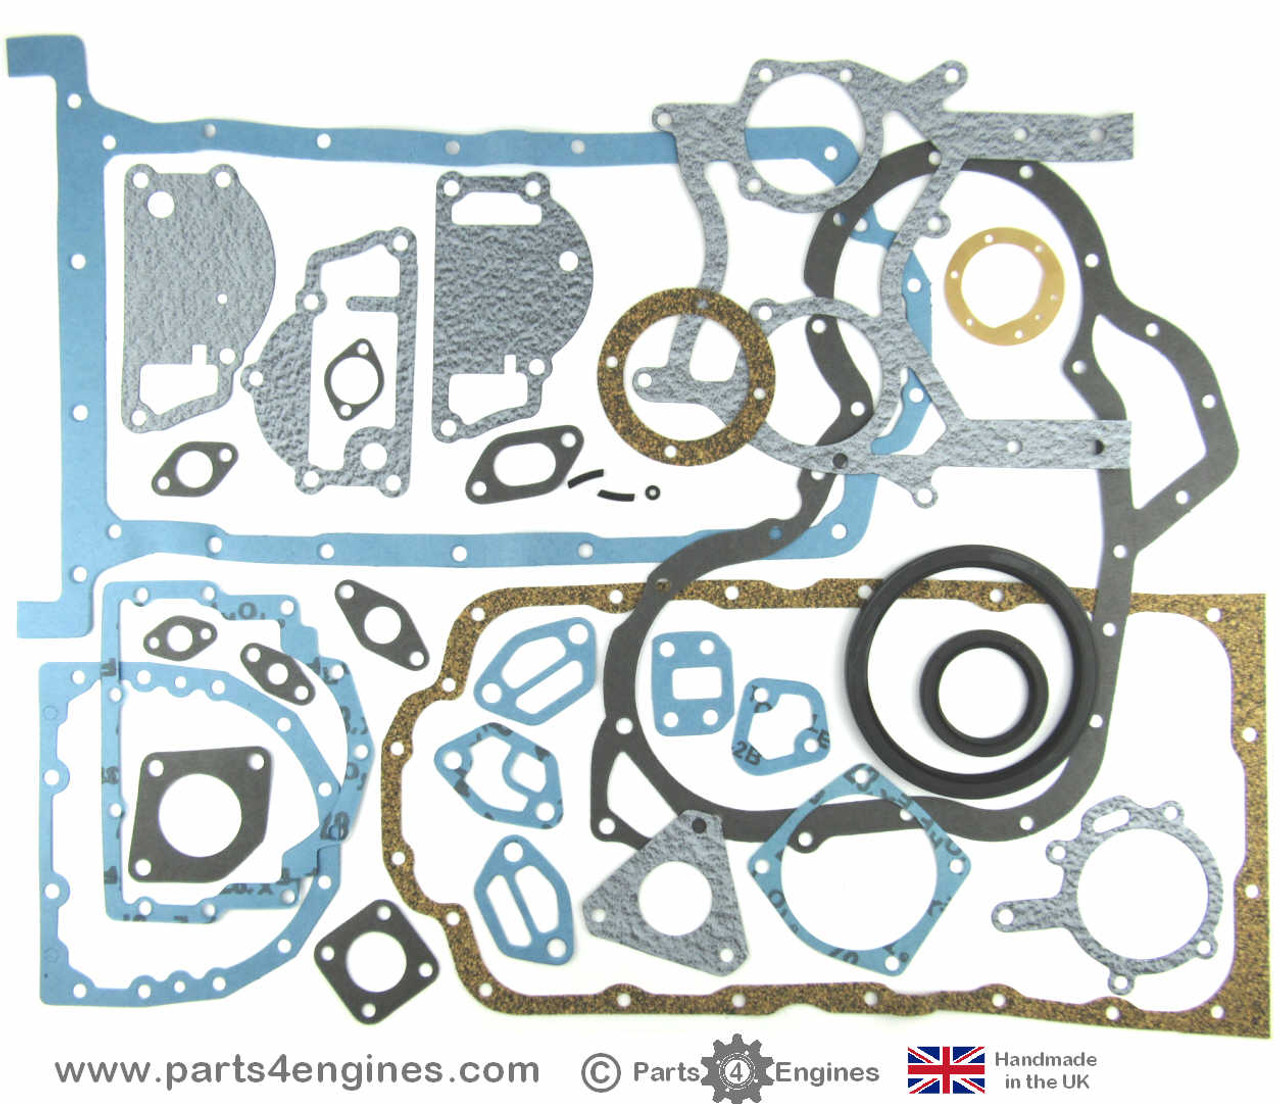 Perkins 4.248 Bottom Gasket set from parts4engines.com